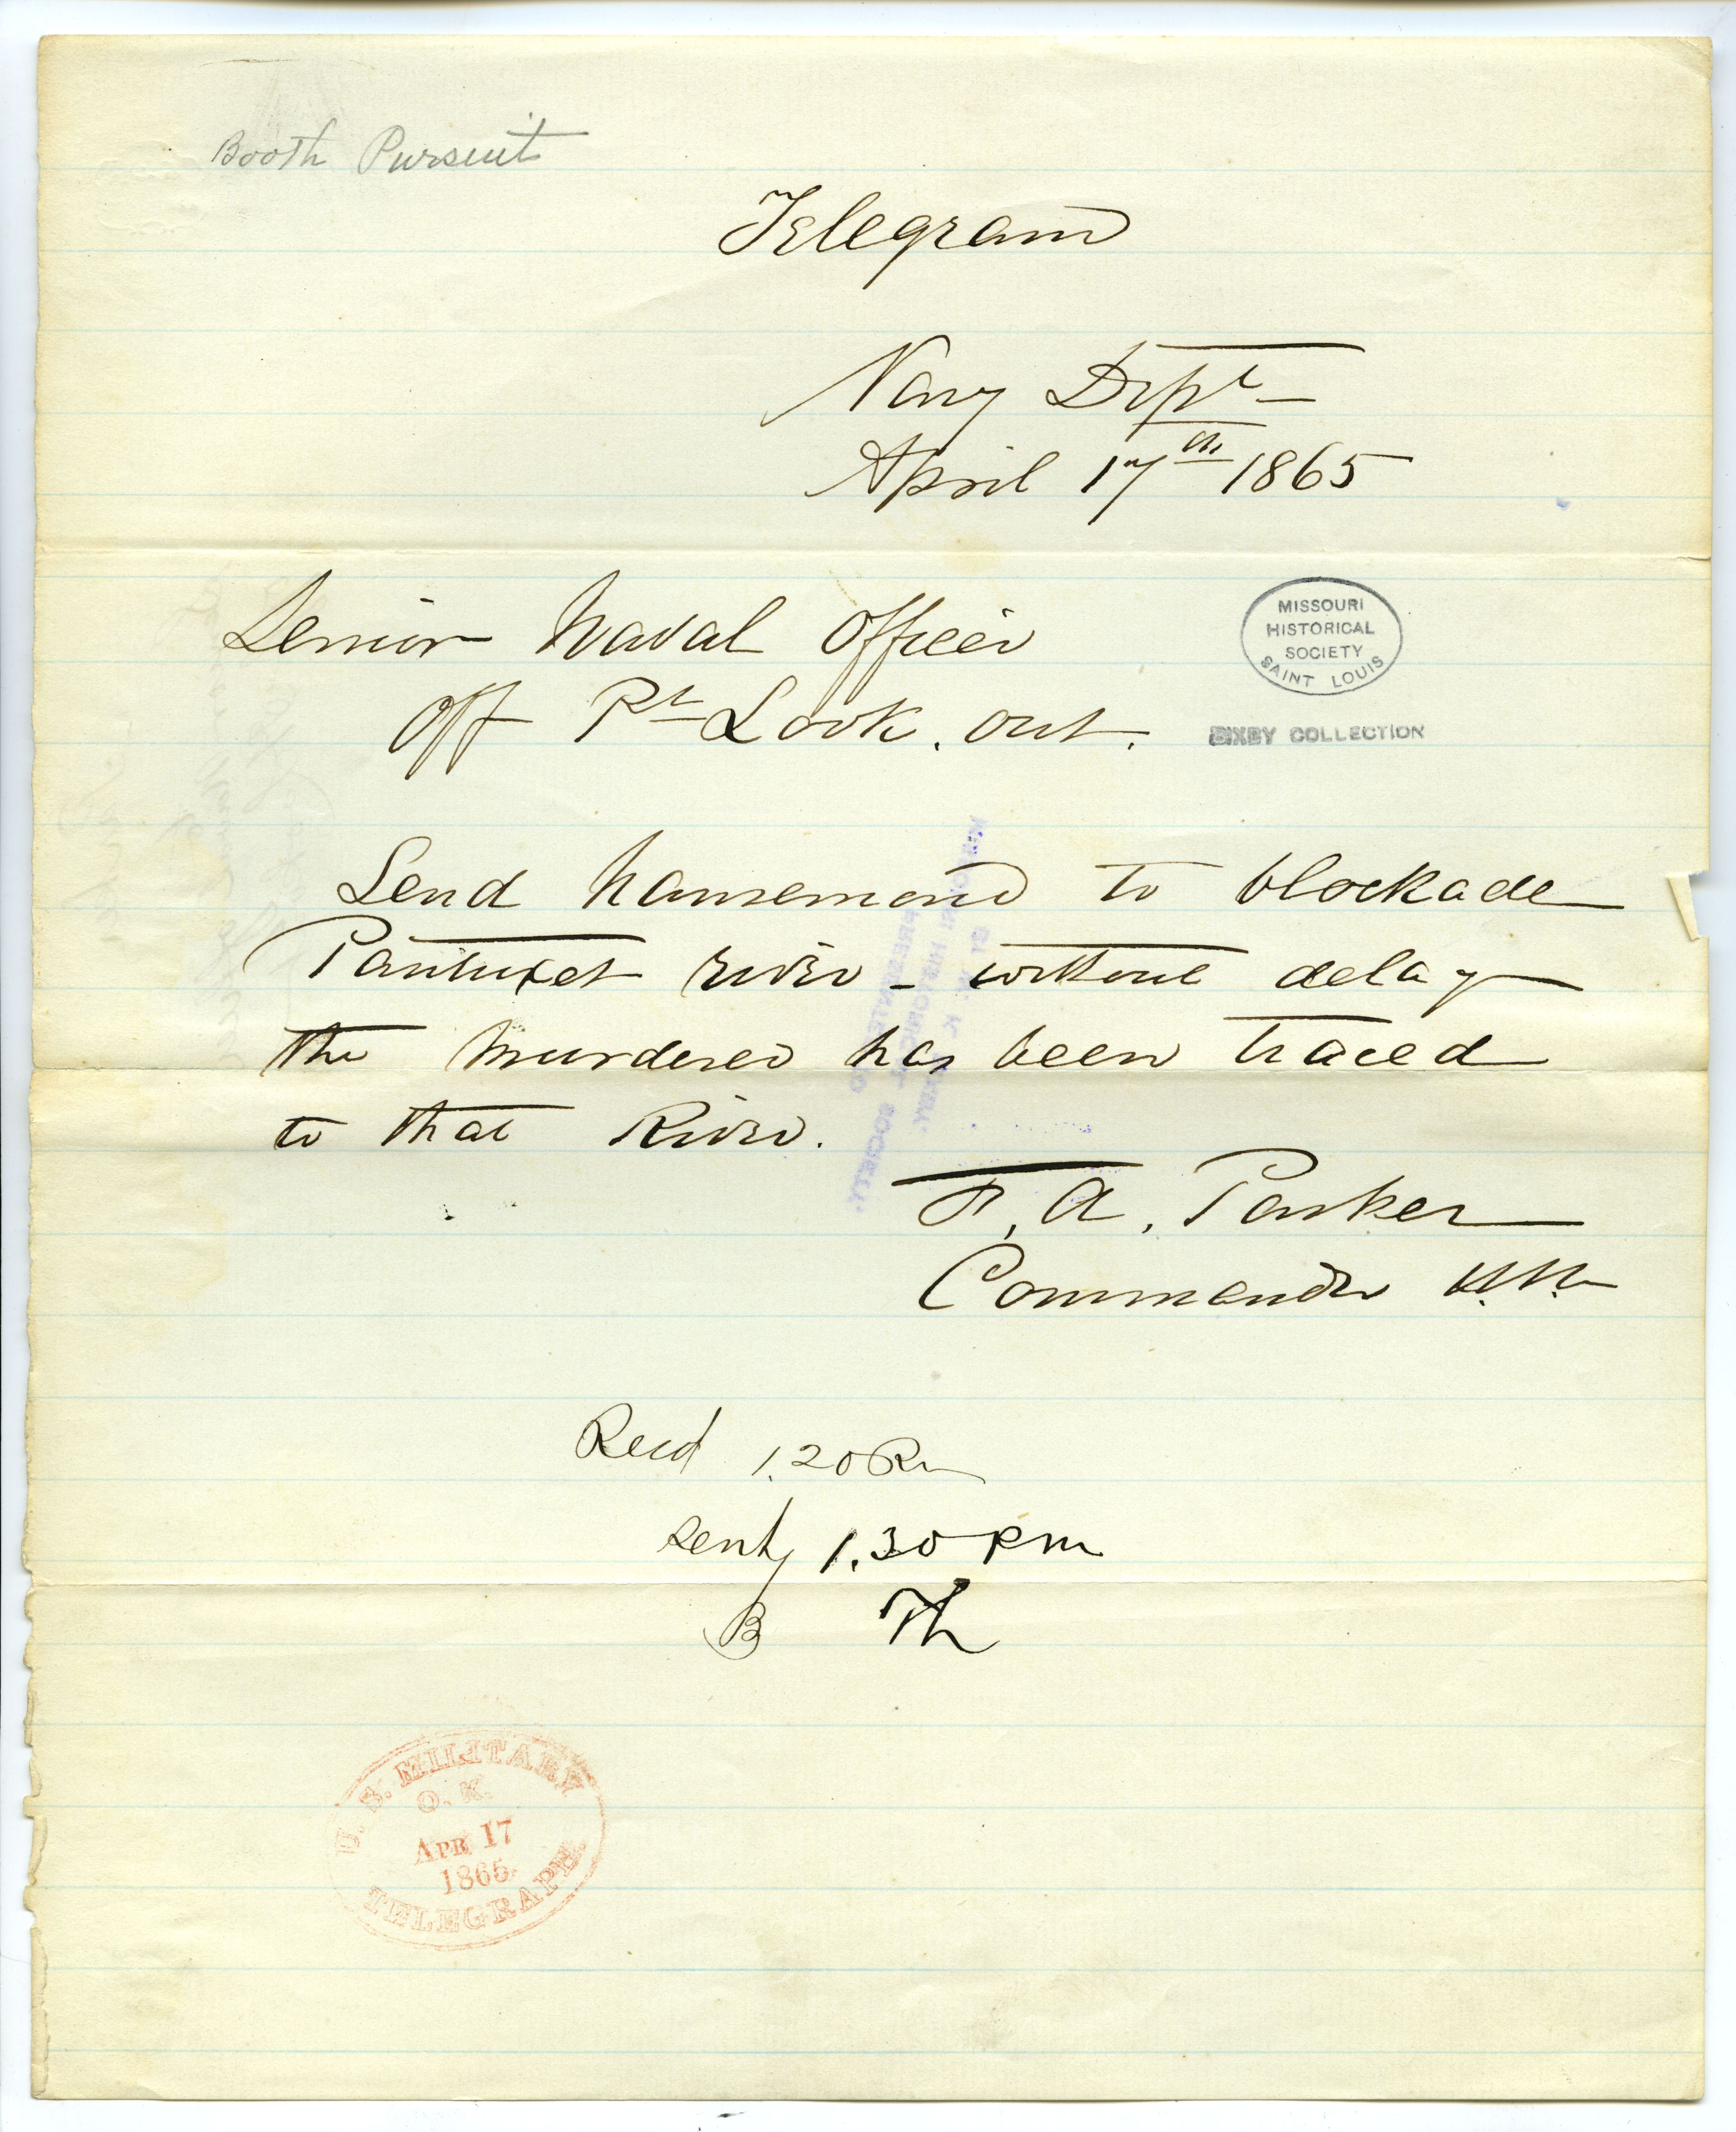 Contemporary copy of telegram of F.A. Parker, Navy Dept., to Senior Naval Officer, Off Pt. Lookout, April 17, 1865